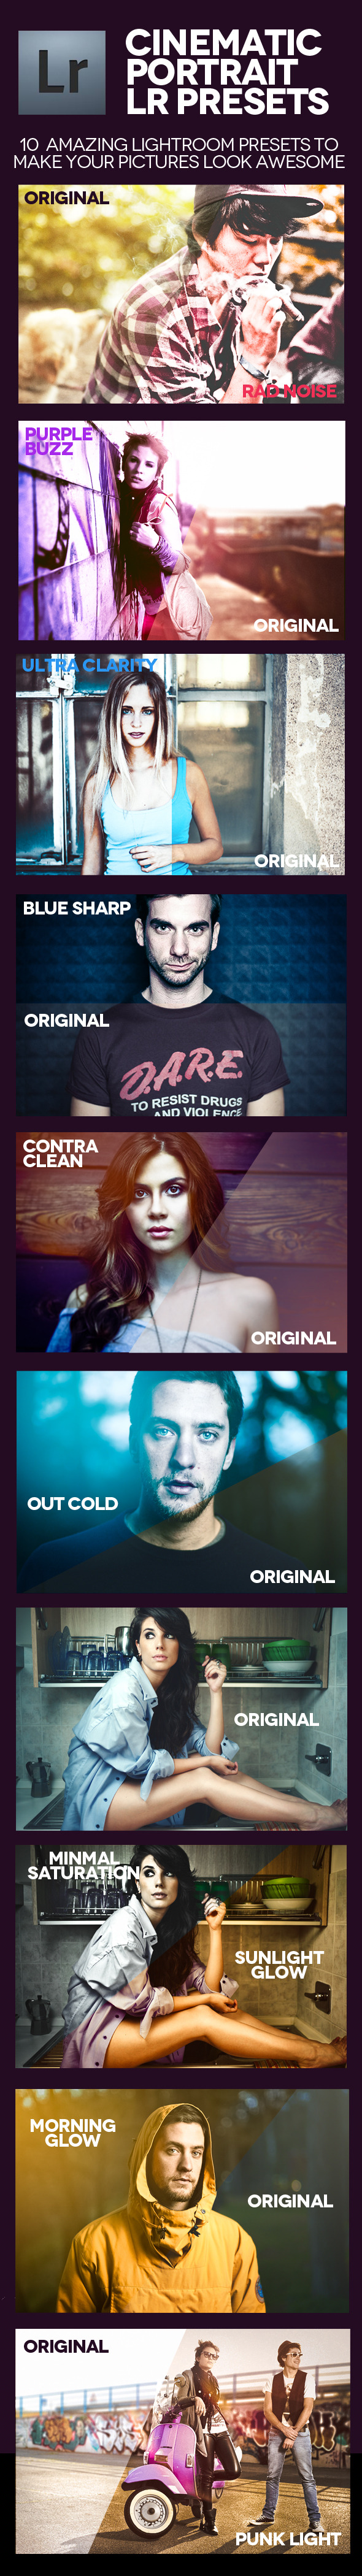 Cinematic Portrait Presets - Cinematic Lightroom Presets